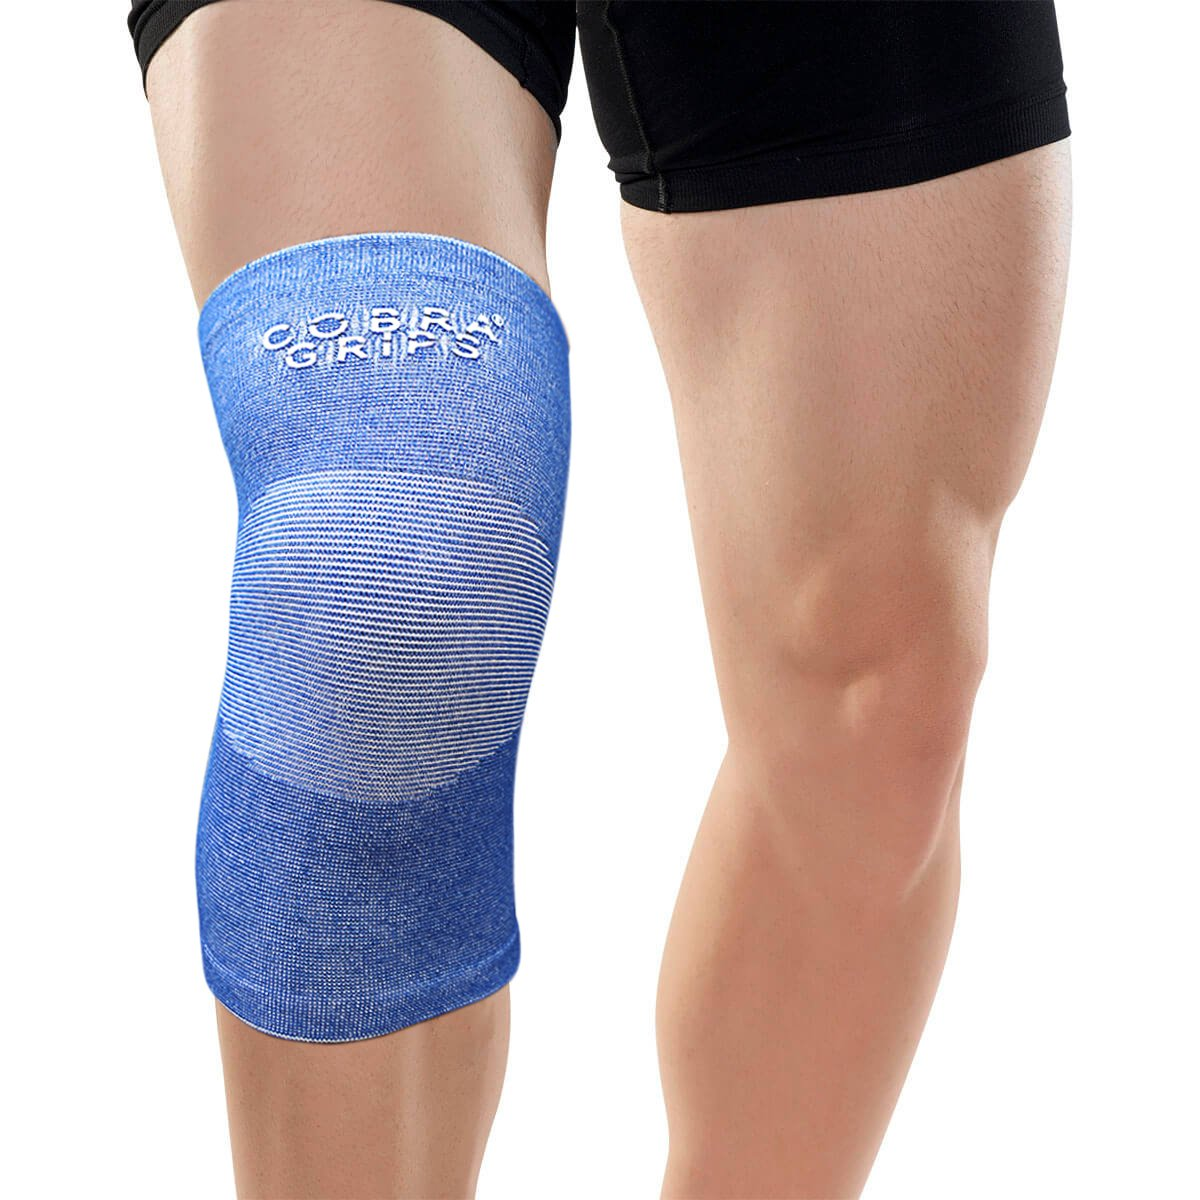 Bamboo Knee Support Sleeves (Pair) for Joint Pain and Arthritis Relief, Improved Circulation Compression – Effective Support for Running, Jogging,Workout, Walking, Hiking and Recovery Grip Power Pads